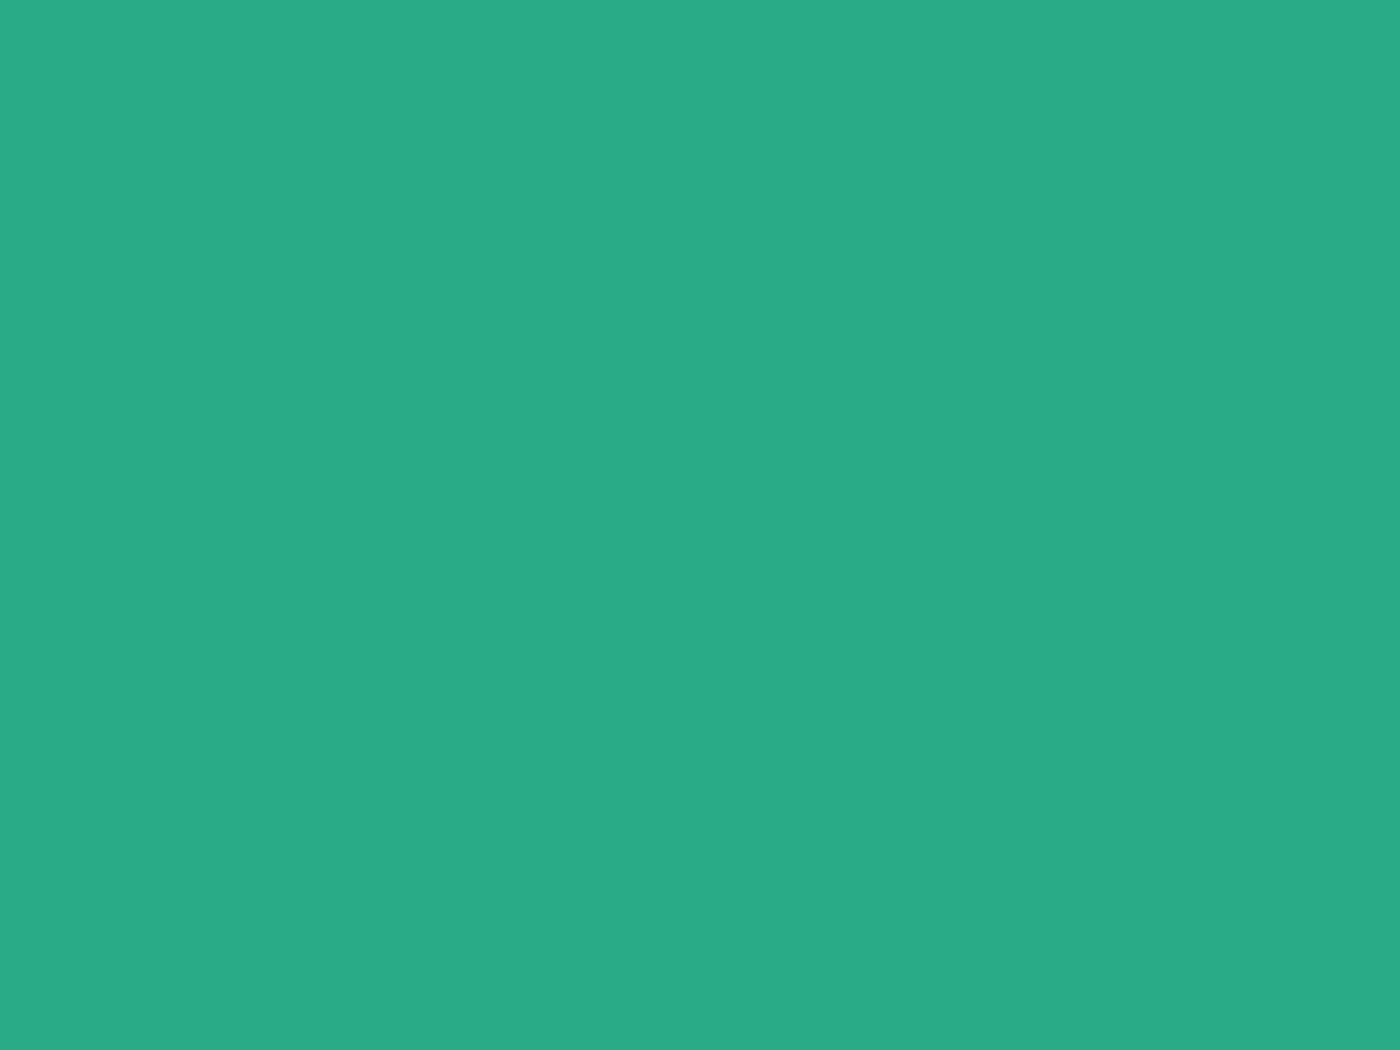 1400x1050 Jungle Green Solid Color Background